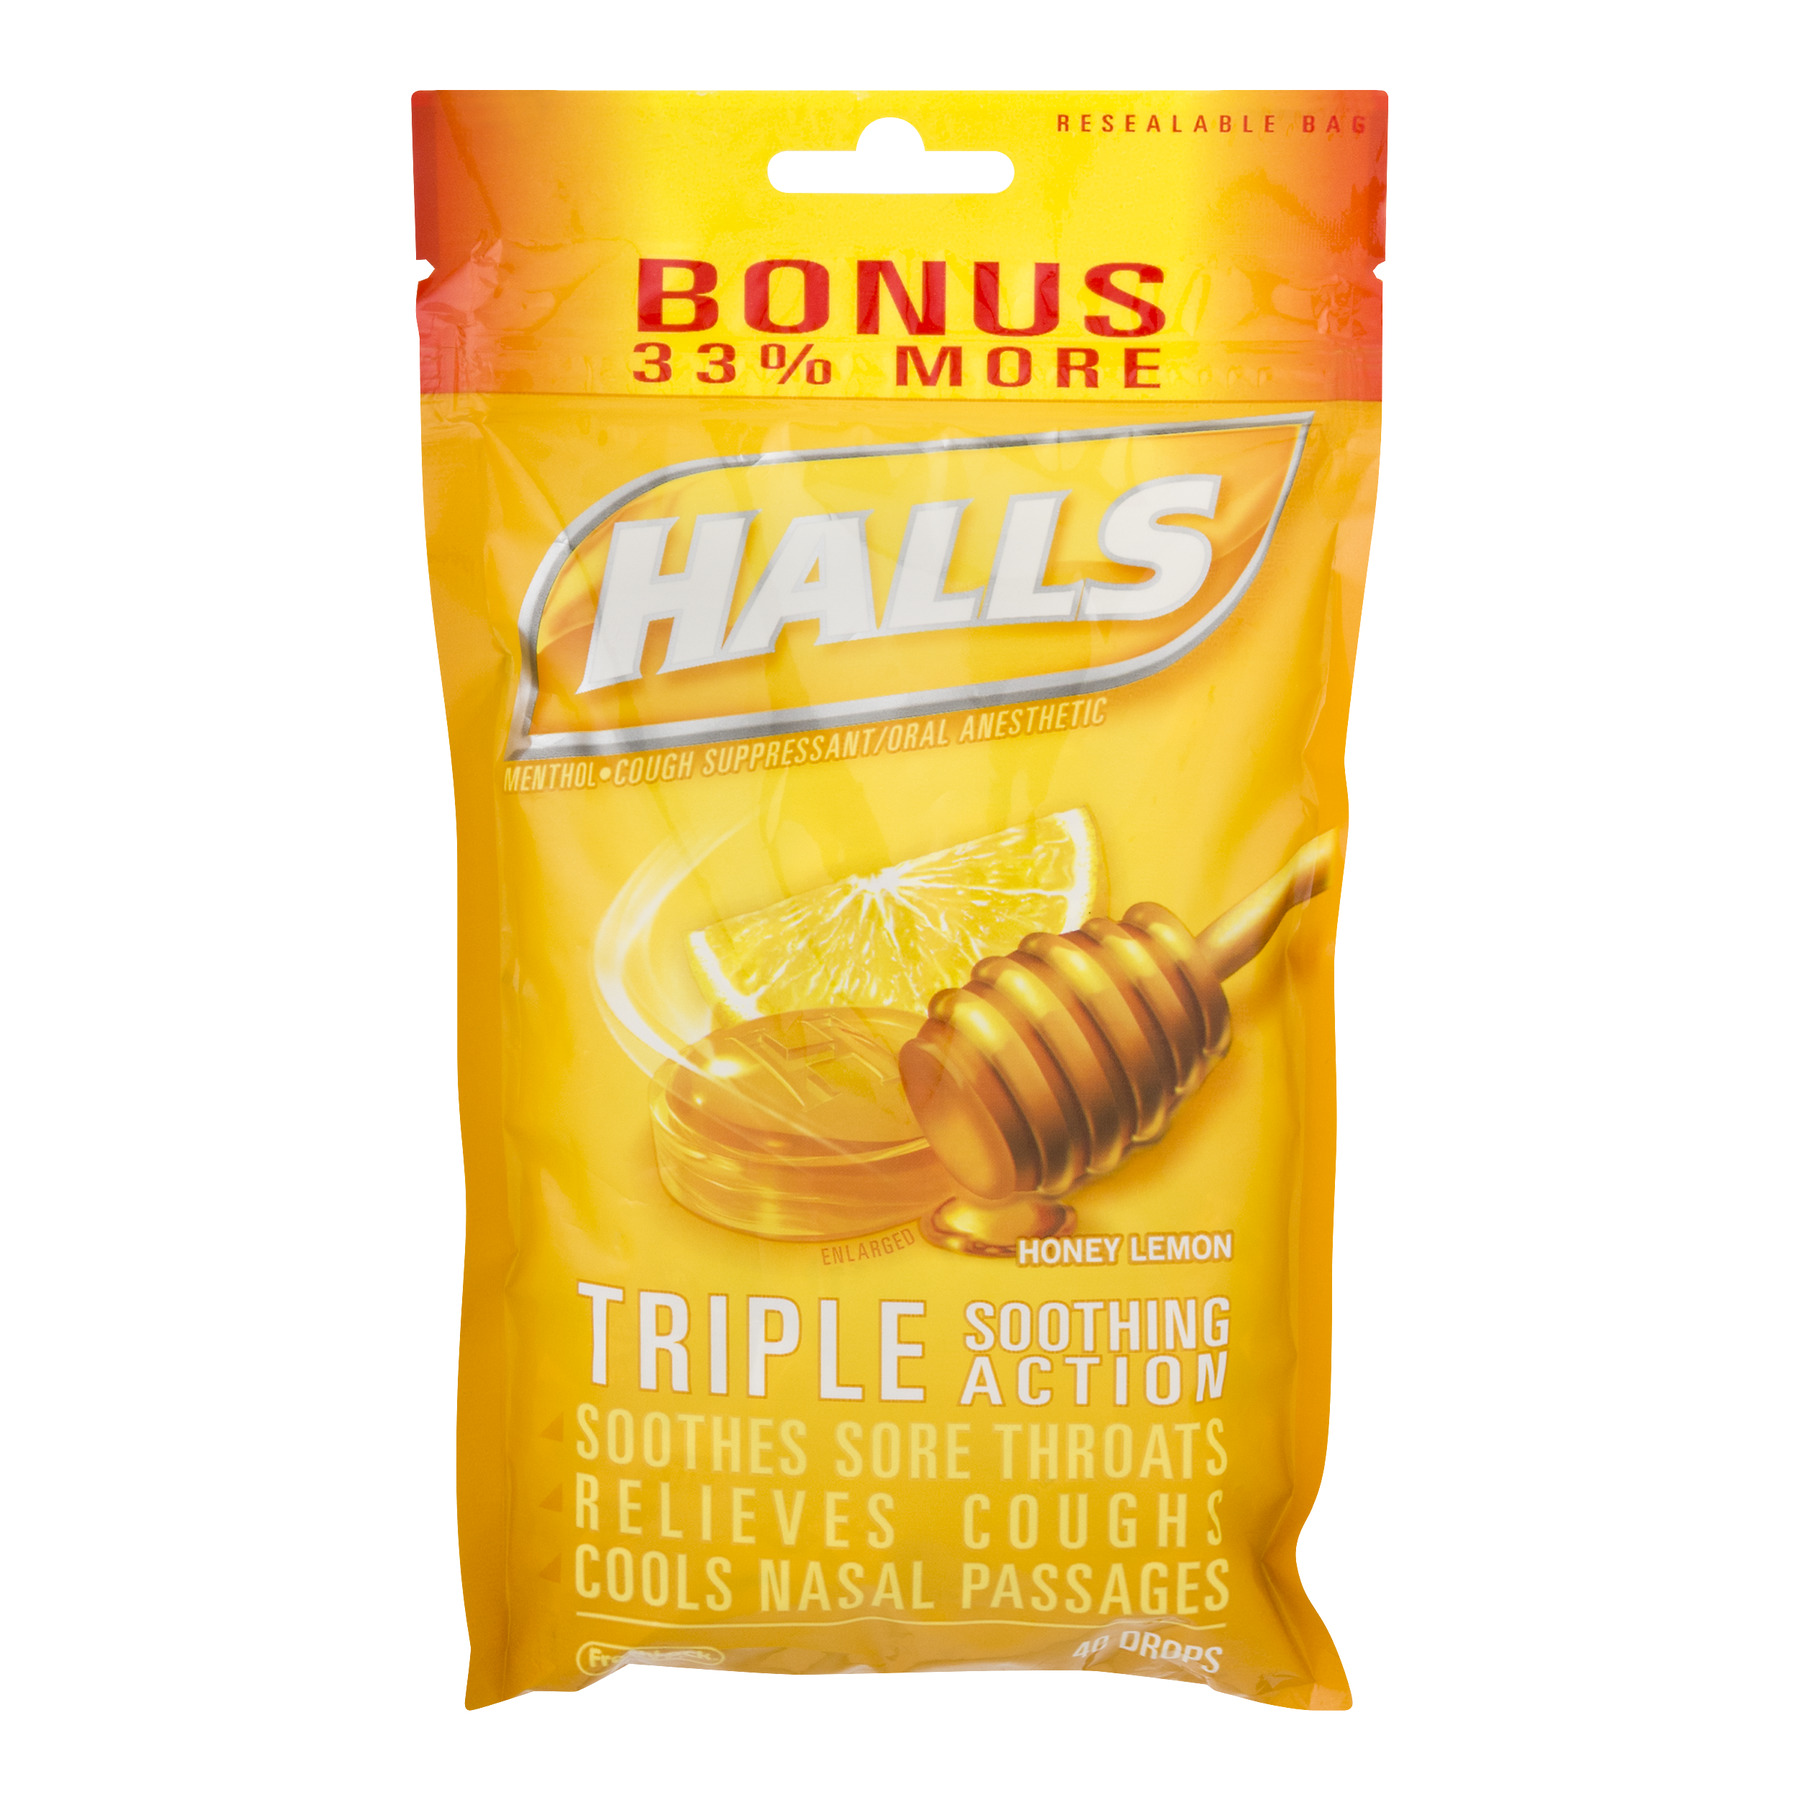 Halls Mentho - Lyptus Cough Drops Advanced Vapor Action, Honey - Lemon Flavor 40 Drops (Pack of 3)